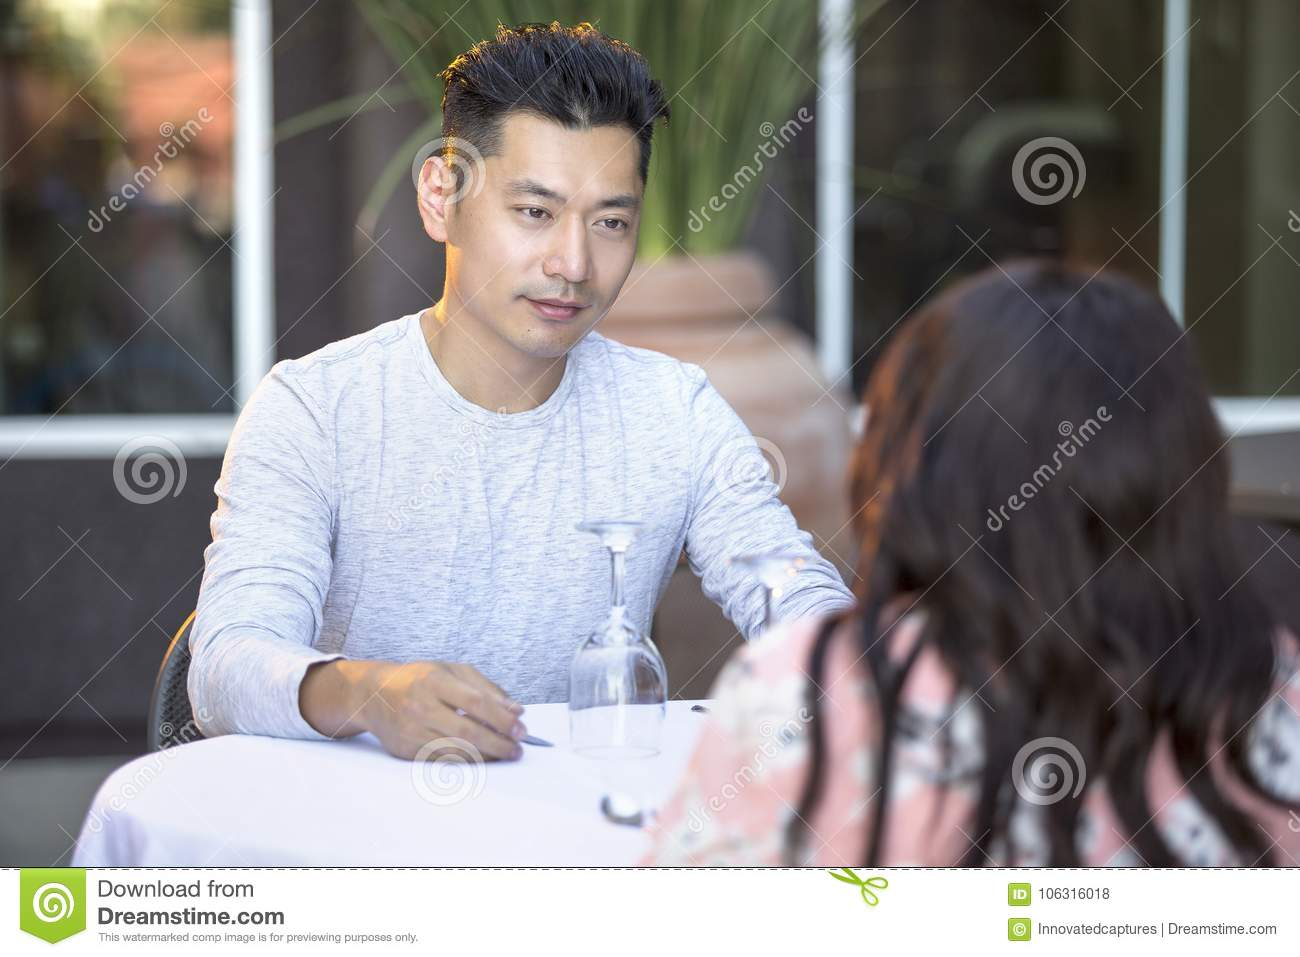 San francisco dating asian male